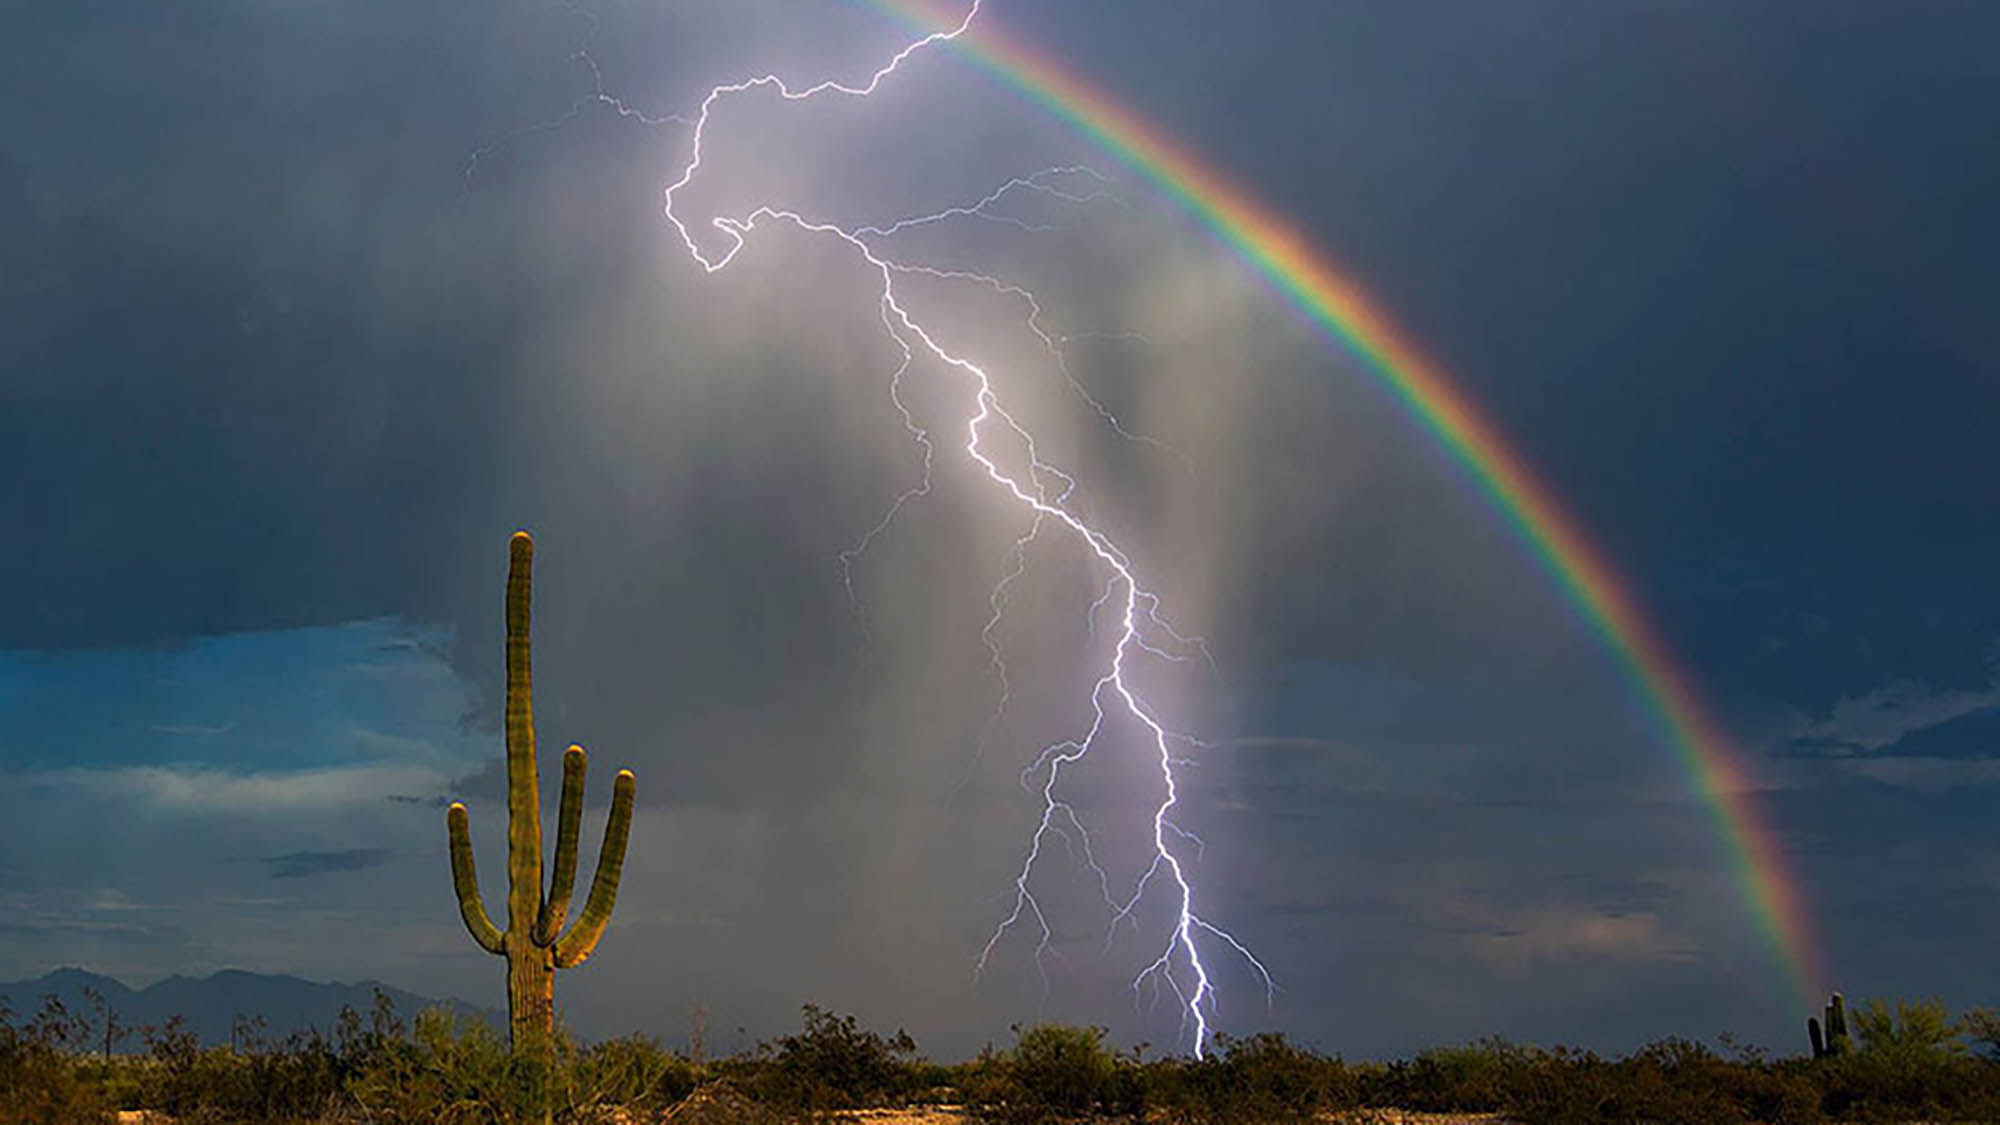 Once-in-a-lifetime shot of lightning and rainbow together